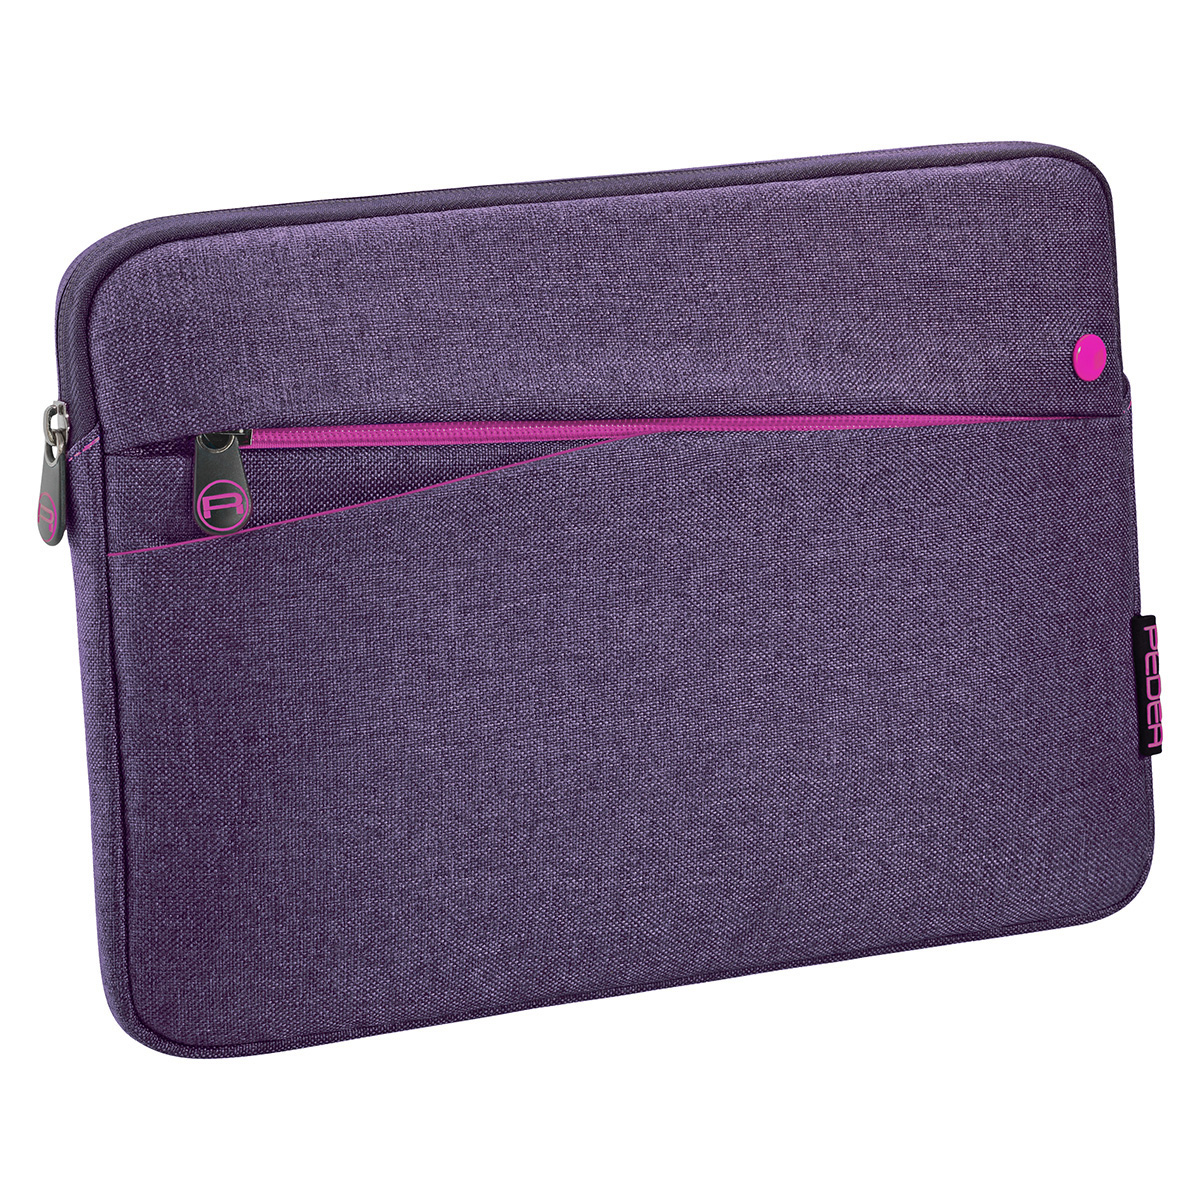 "PEDEA Tablet-Tasche 10,1"" (25,7cm) lila ""Fashion"""